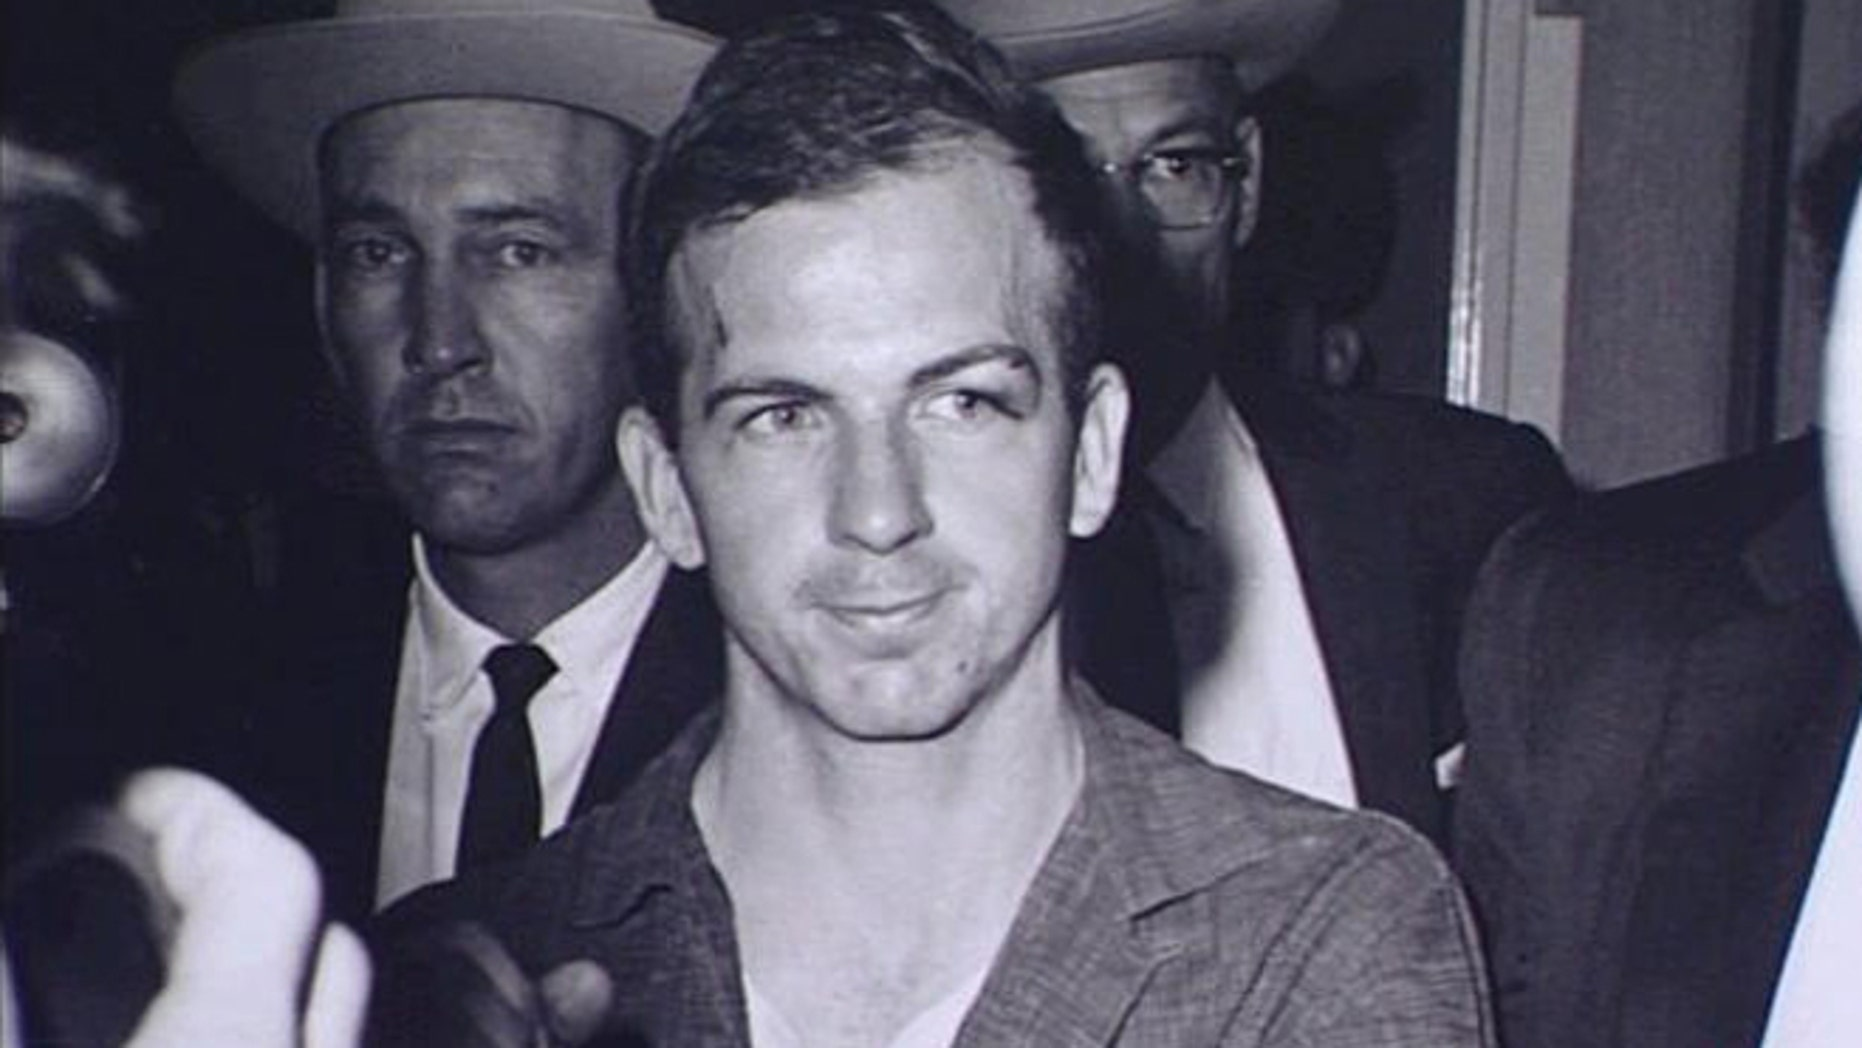 Decades after Kennedy's assassination, many still wonder whether Oswald acted alone or had help.